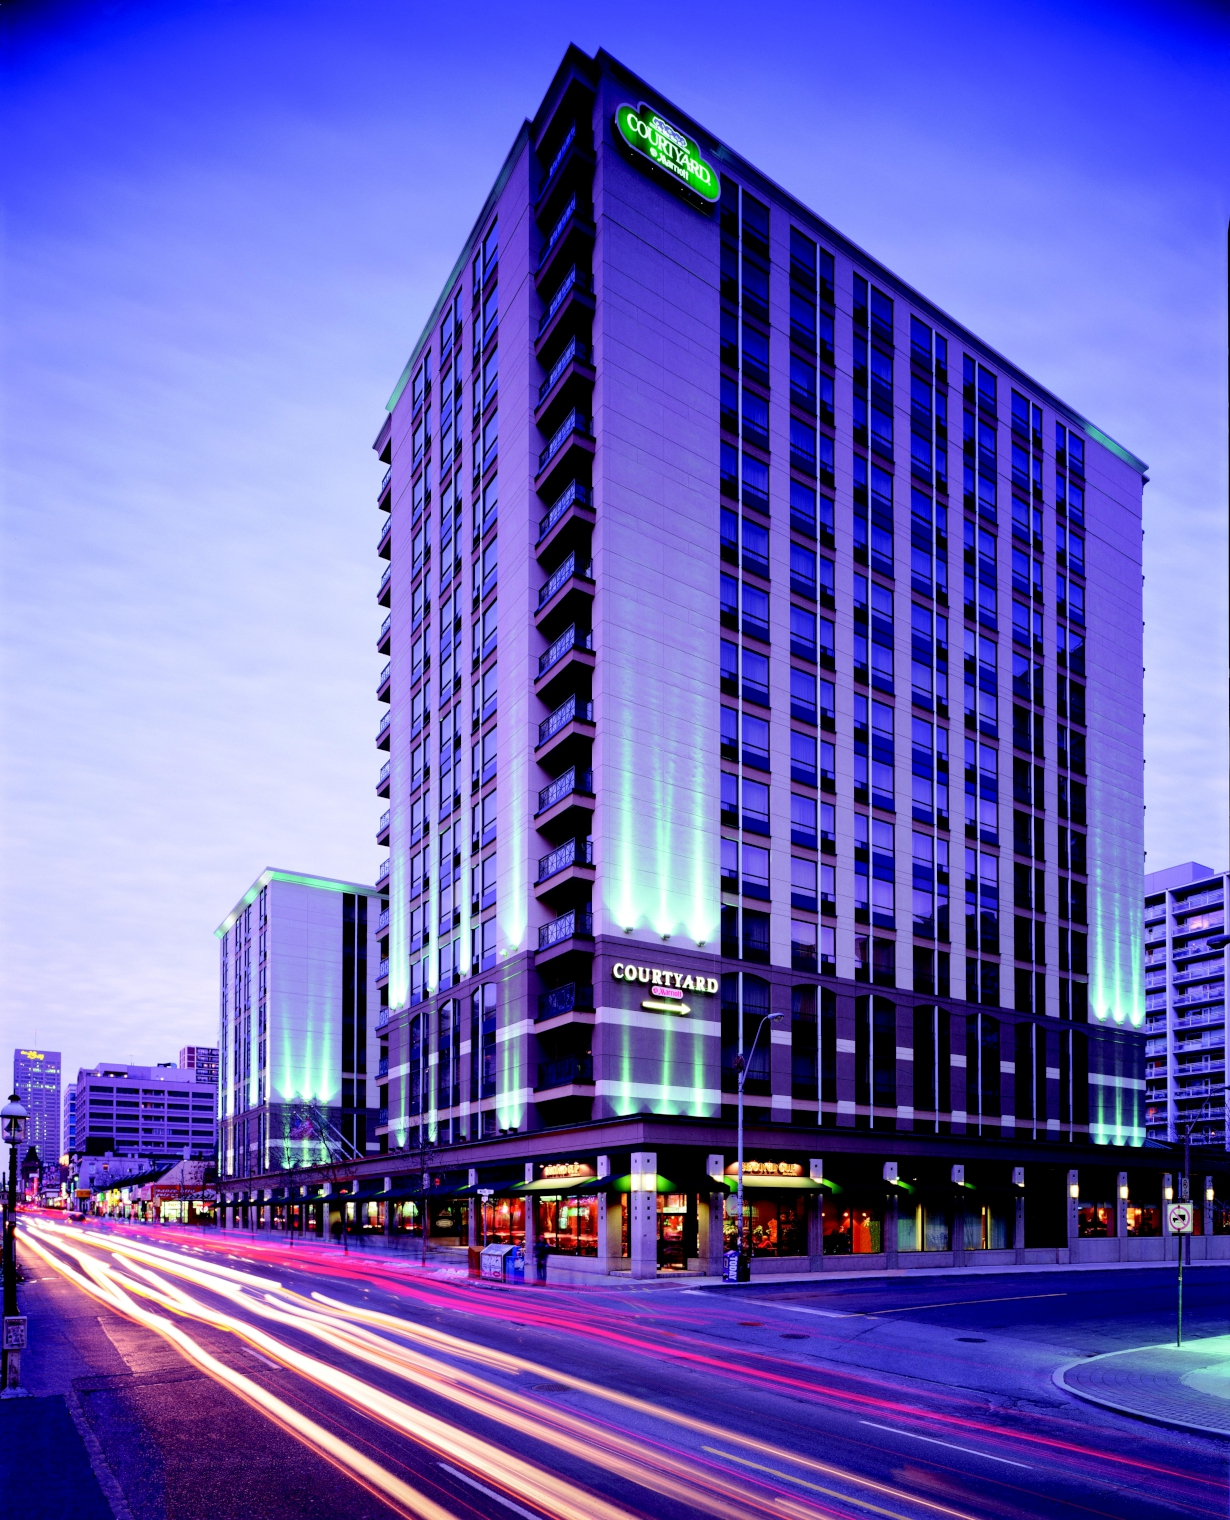 Guests Will Be Inspired At The New Toronto Marriott: Courtyard By Marriott - Toronto